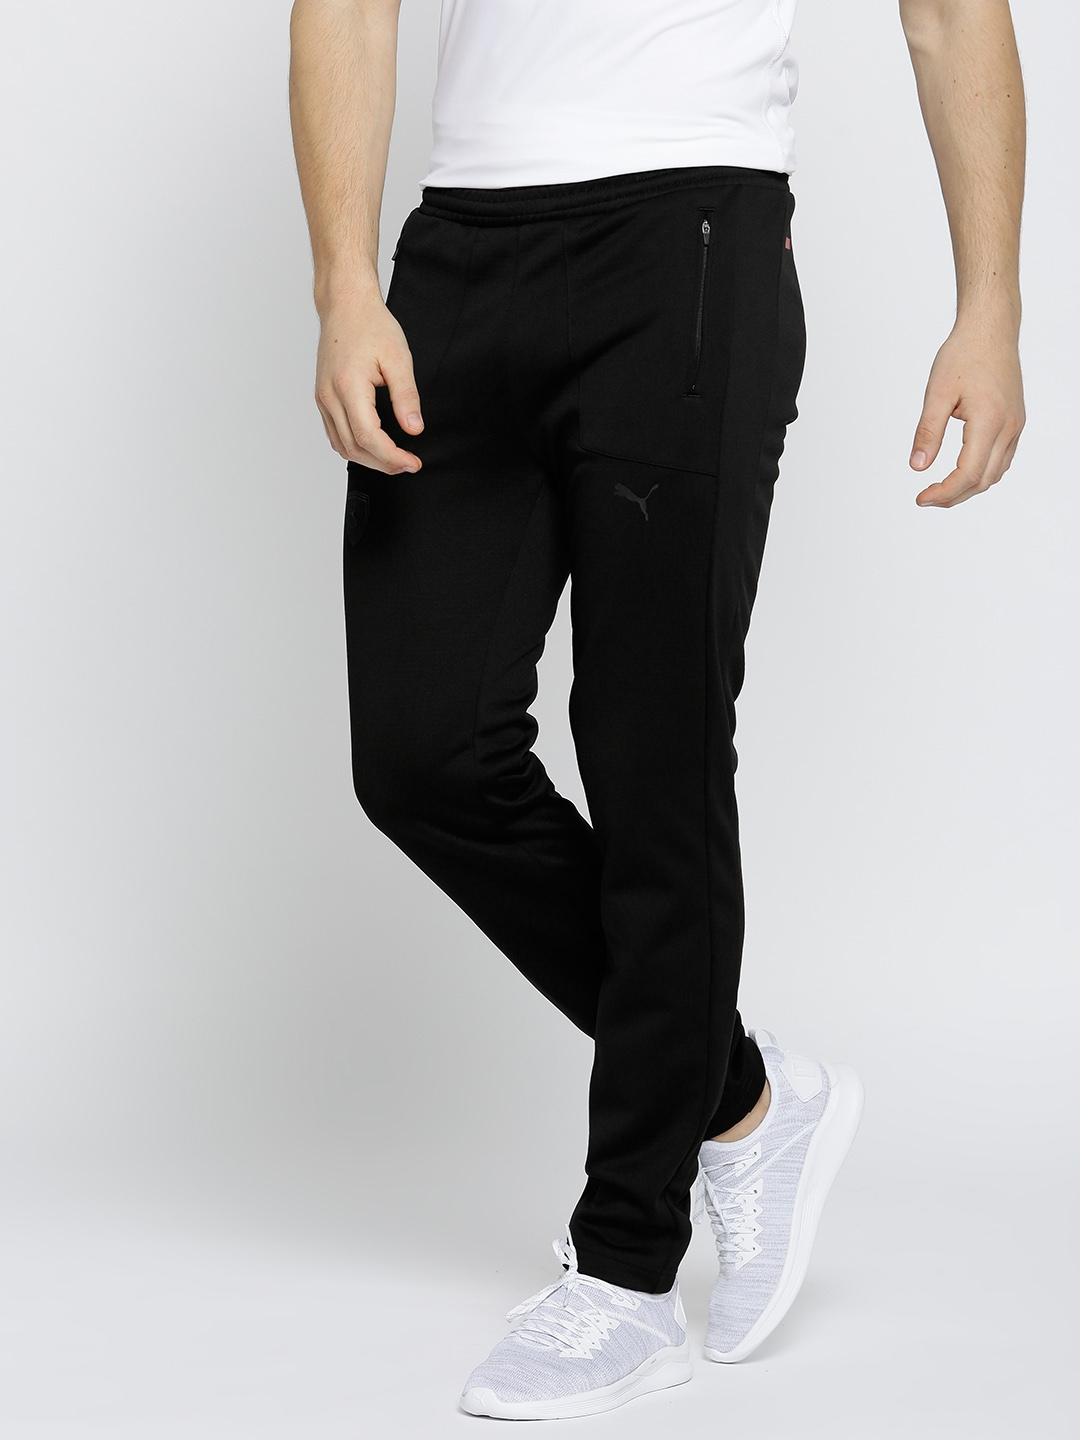 2d26985ce632 Buy Puma Men Black Ferrari T7 Solid Track Pants - Track Pants for ...